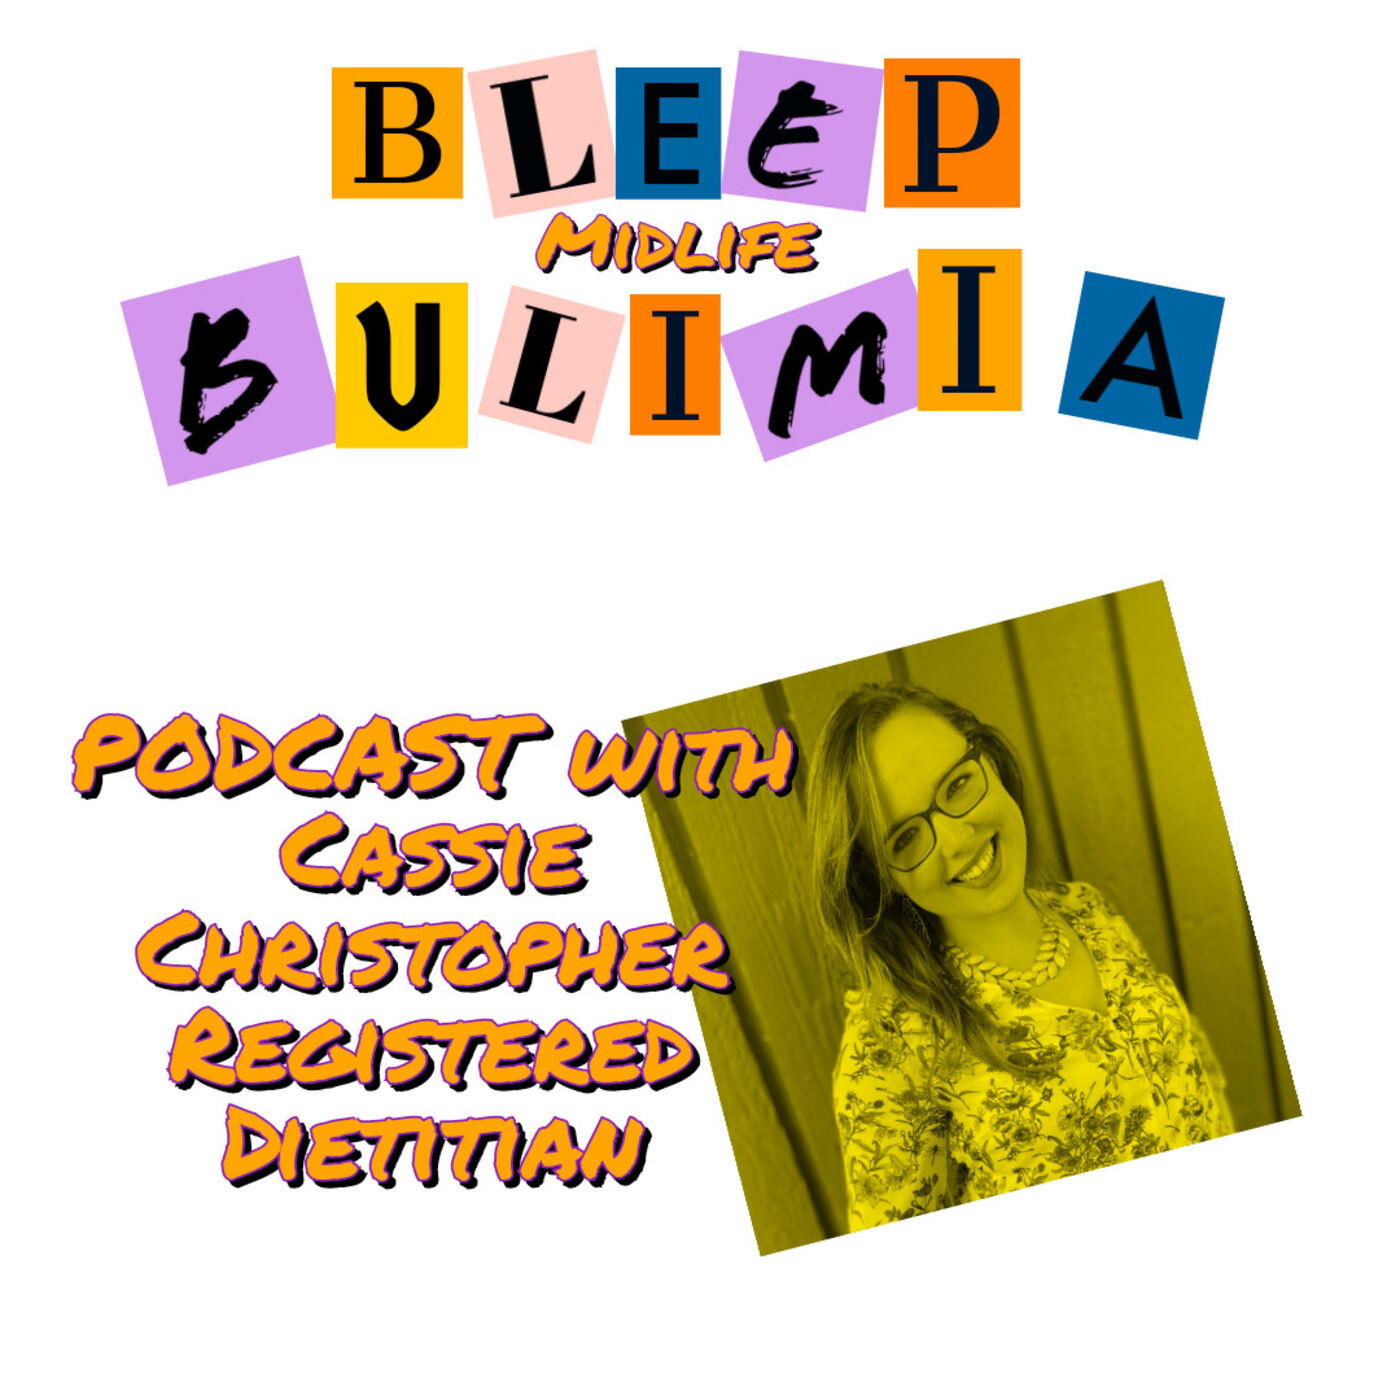 Bleep Bulimia Episode 52 With Cassie Christopher Registered Dietitian